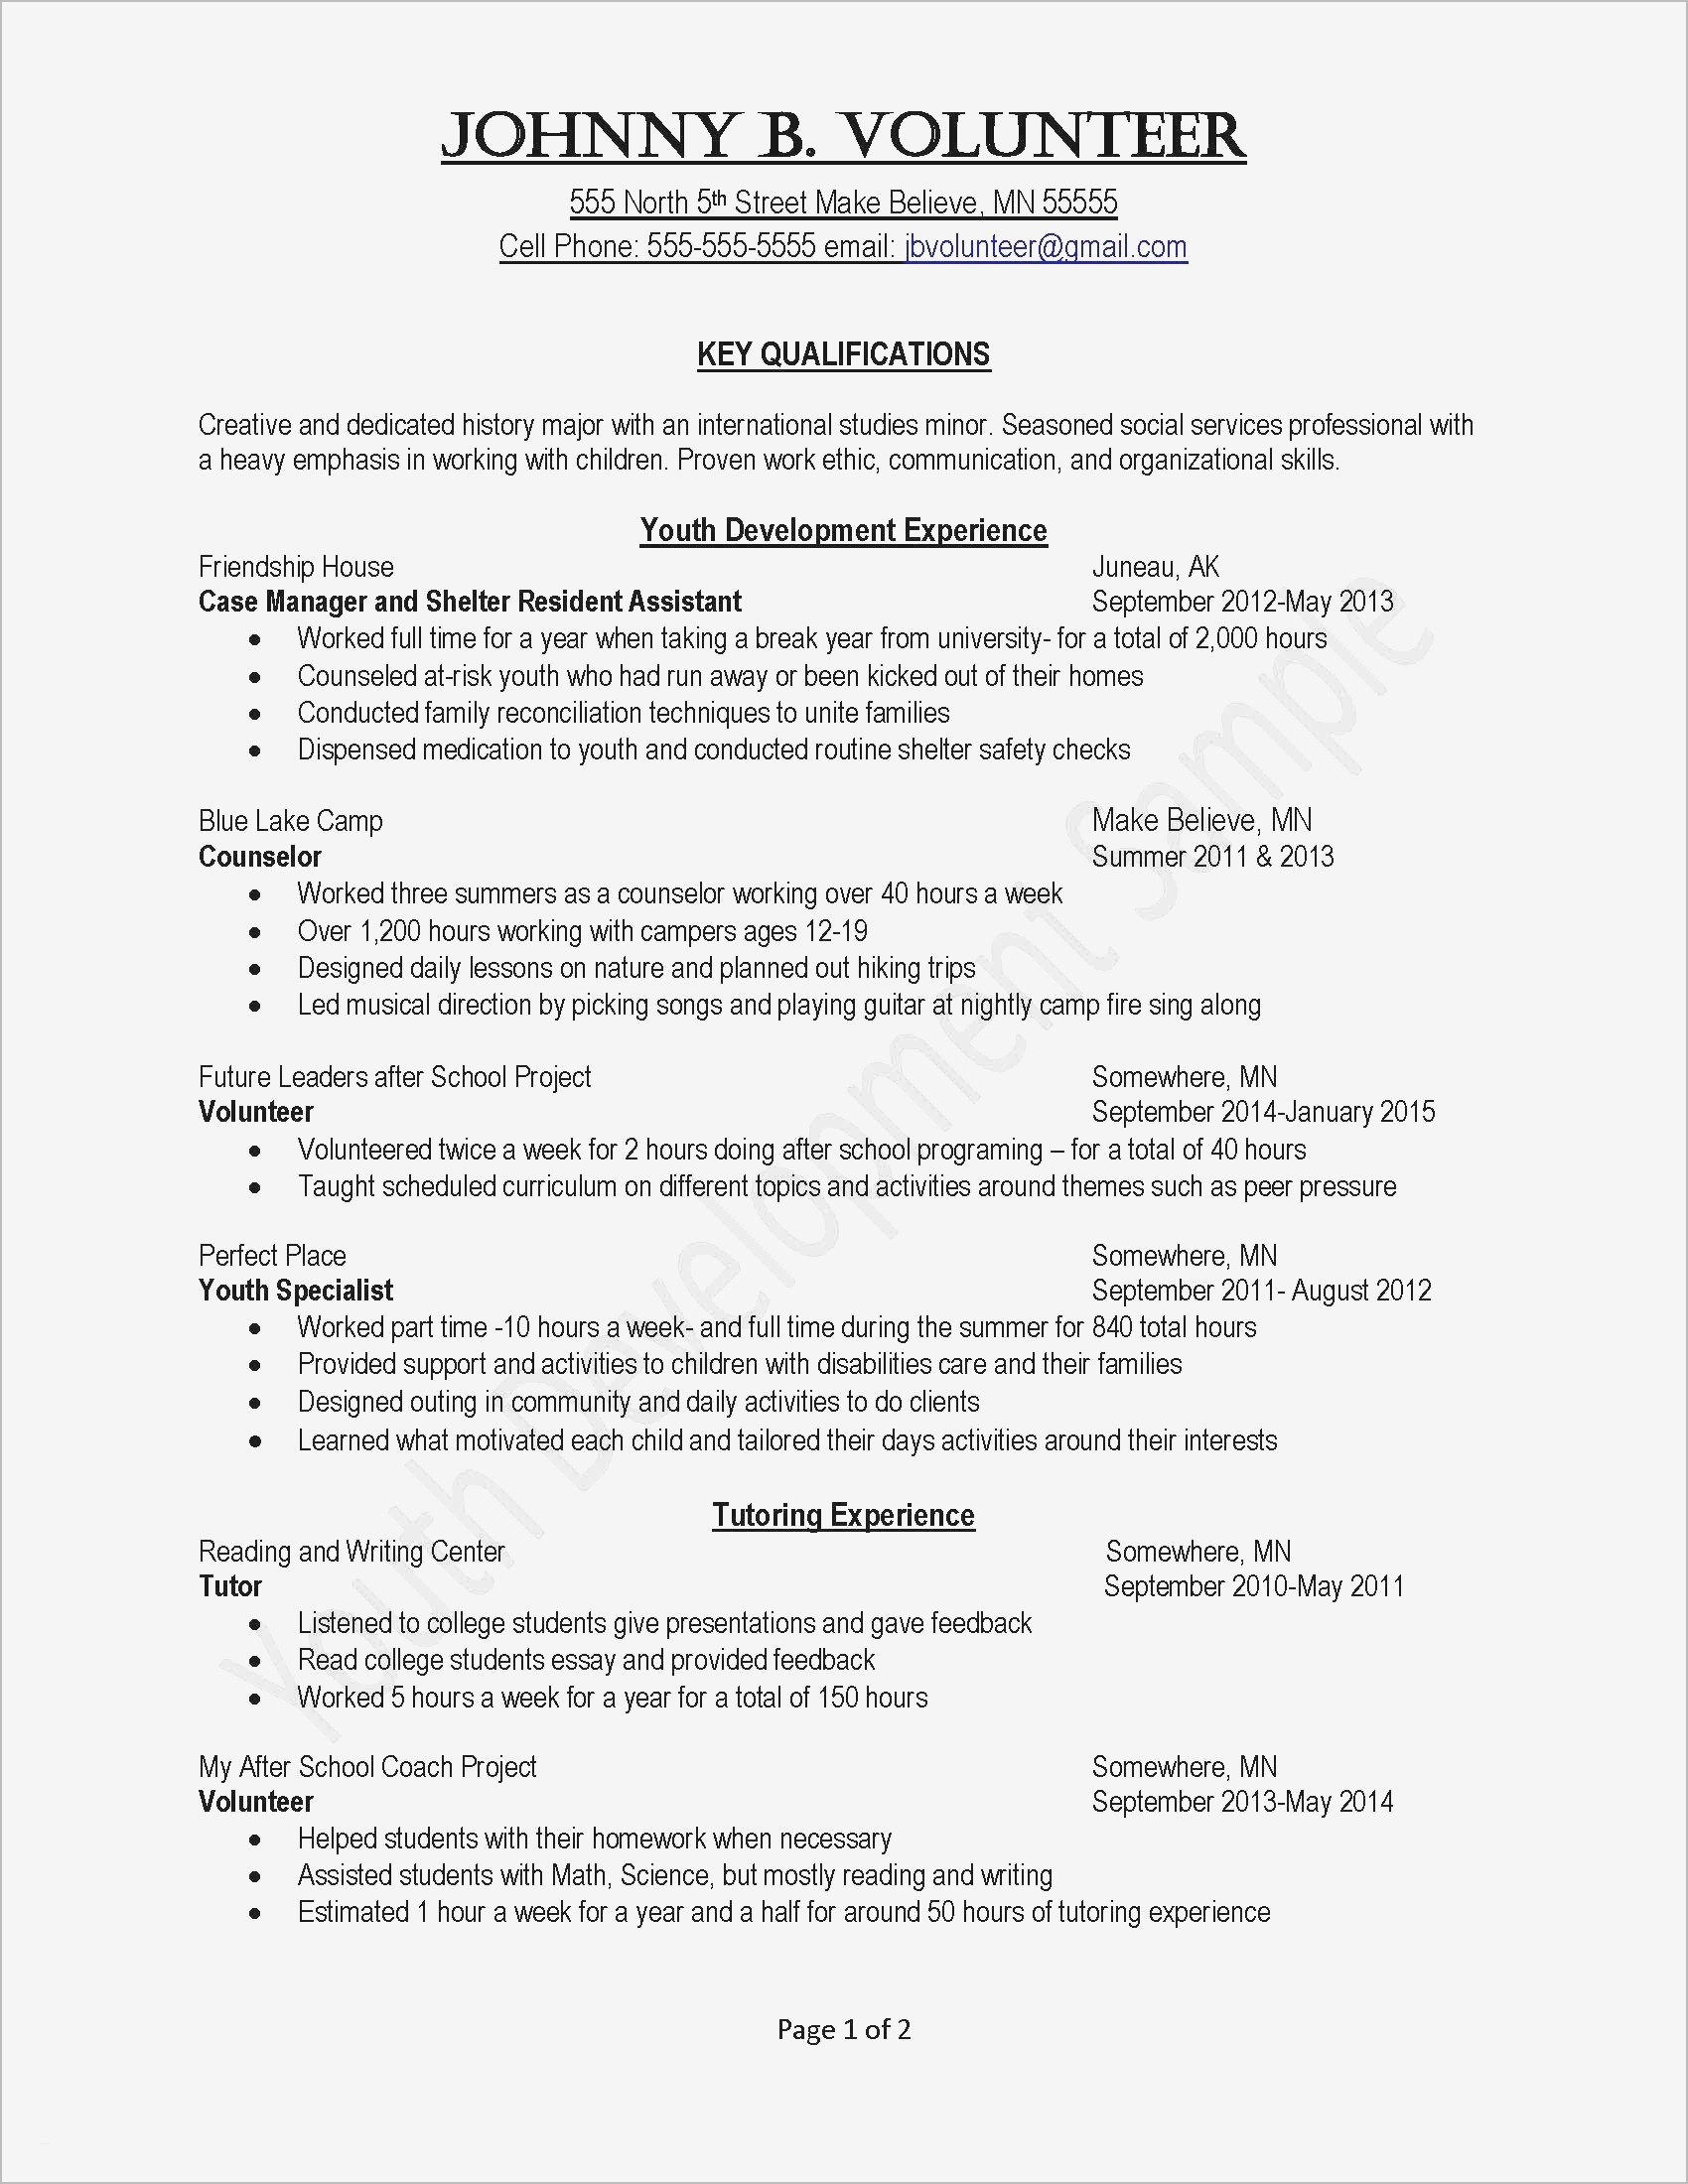 Best Free Cover Letter Template - Free Cover Letter and Resume Templates Best Job Fer Letter